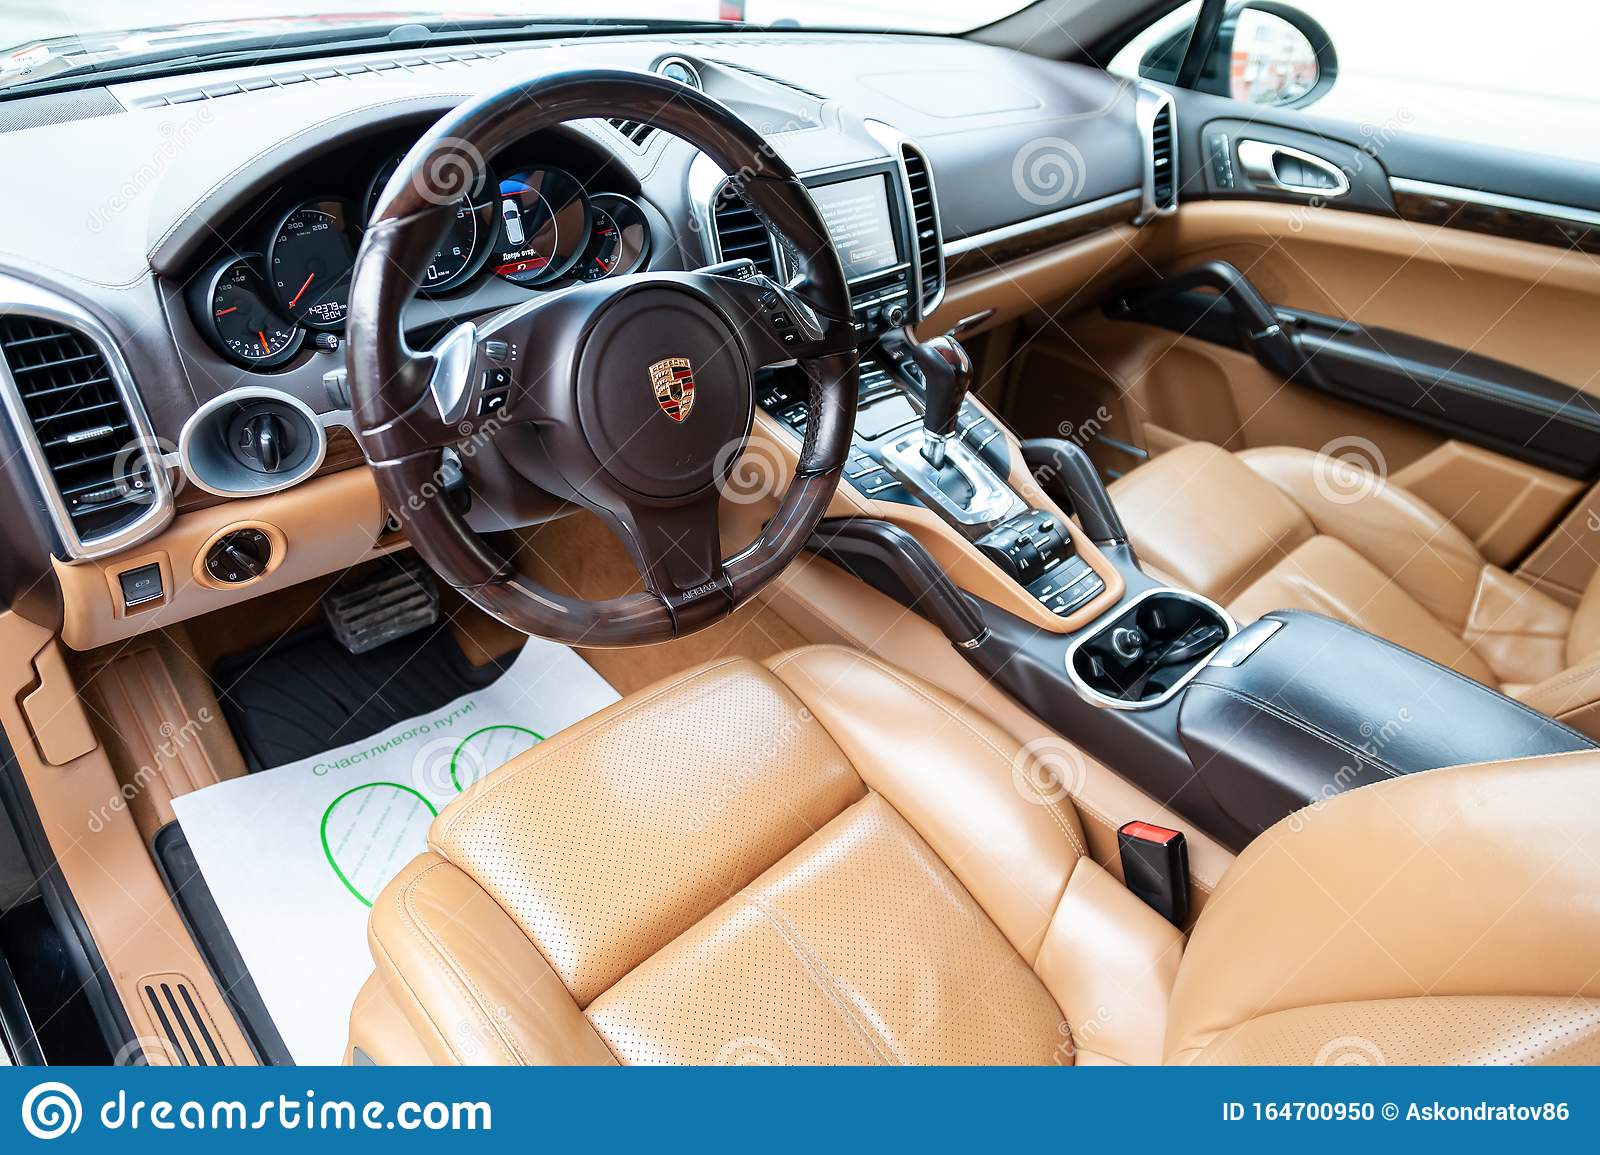 The Interior Of The Car Porsche Cayenne Diesel 958 2012 Year With A View Of The Steering Wheel Dashboard Seats And Multimedia Editorial Image Image Of Business Concept 164700950